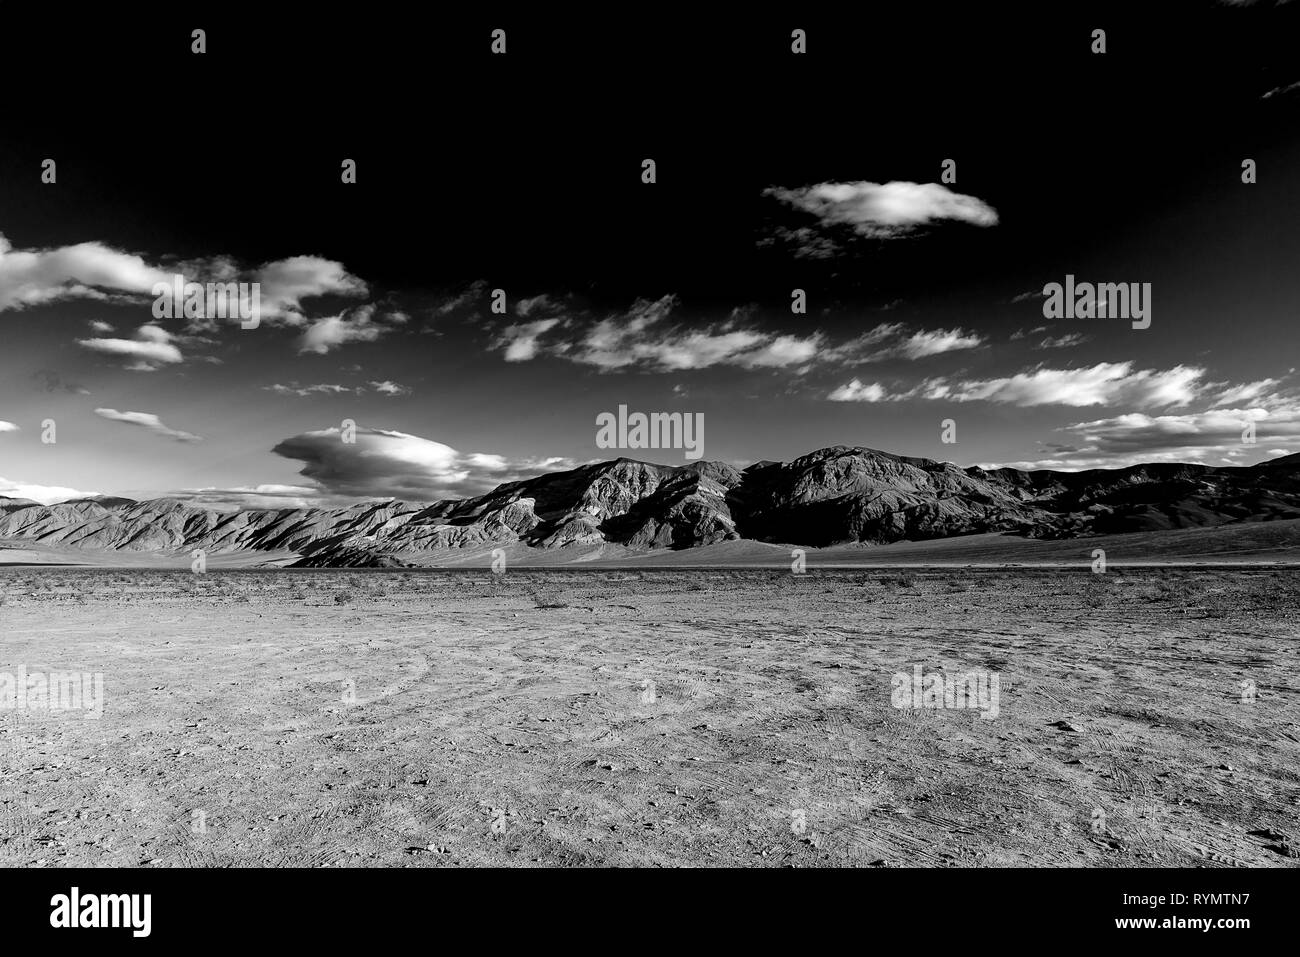 Black and white, barren desert valley and mountains with dark sky and white clouds. - Stock Image